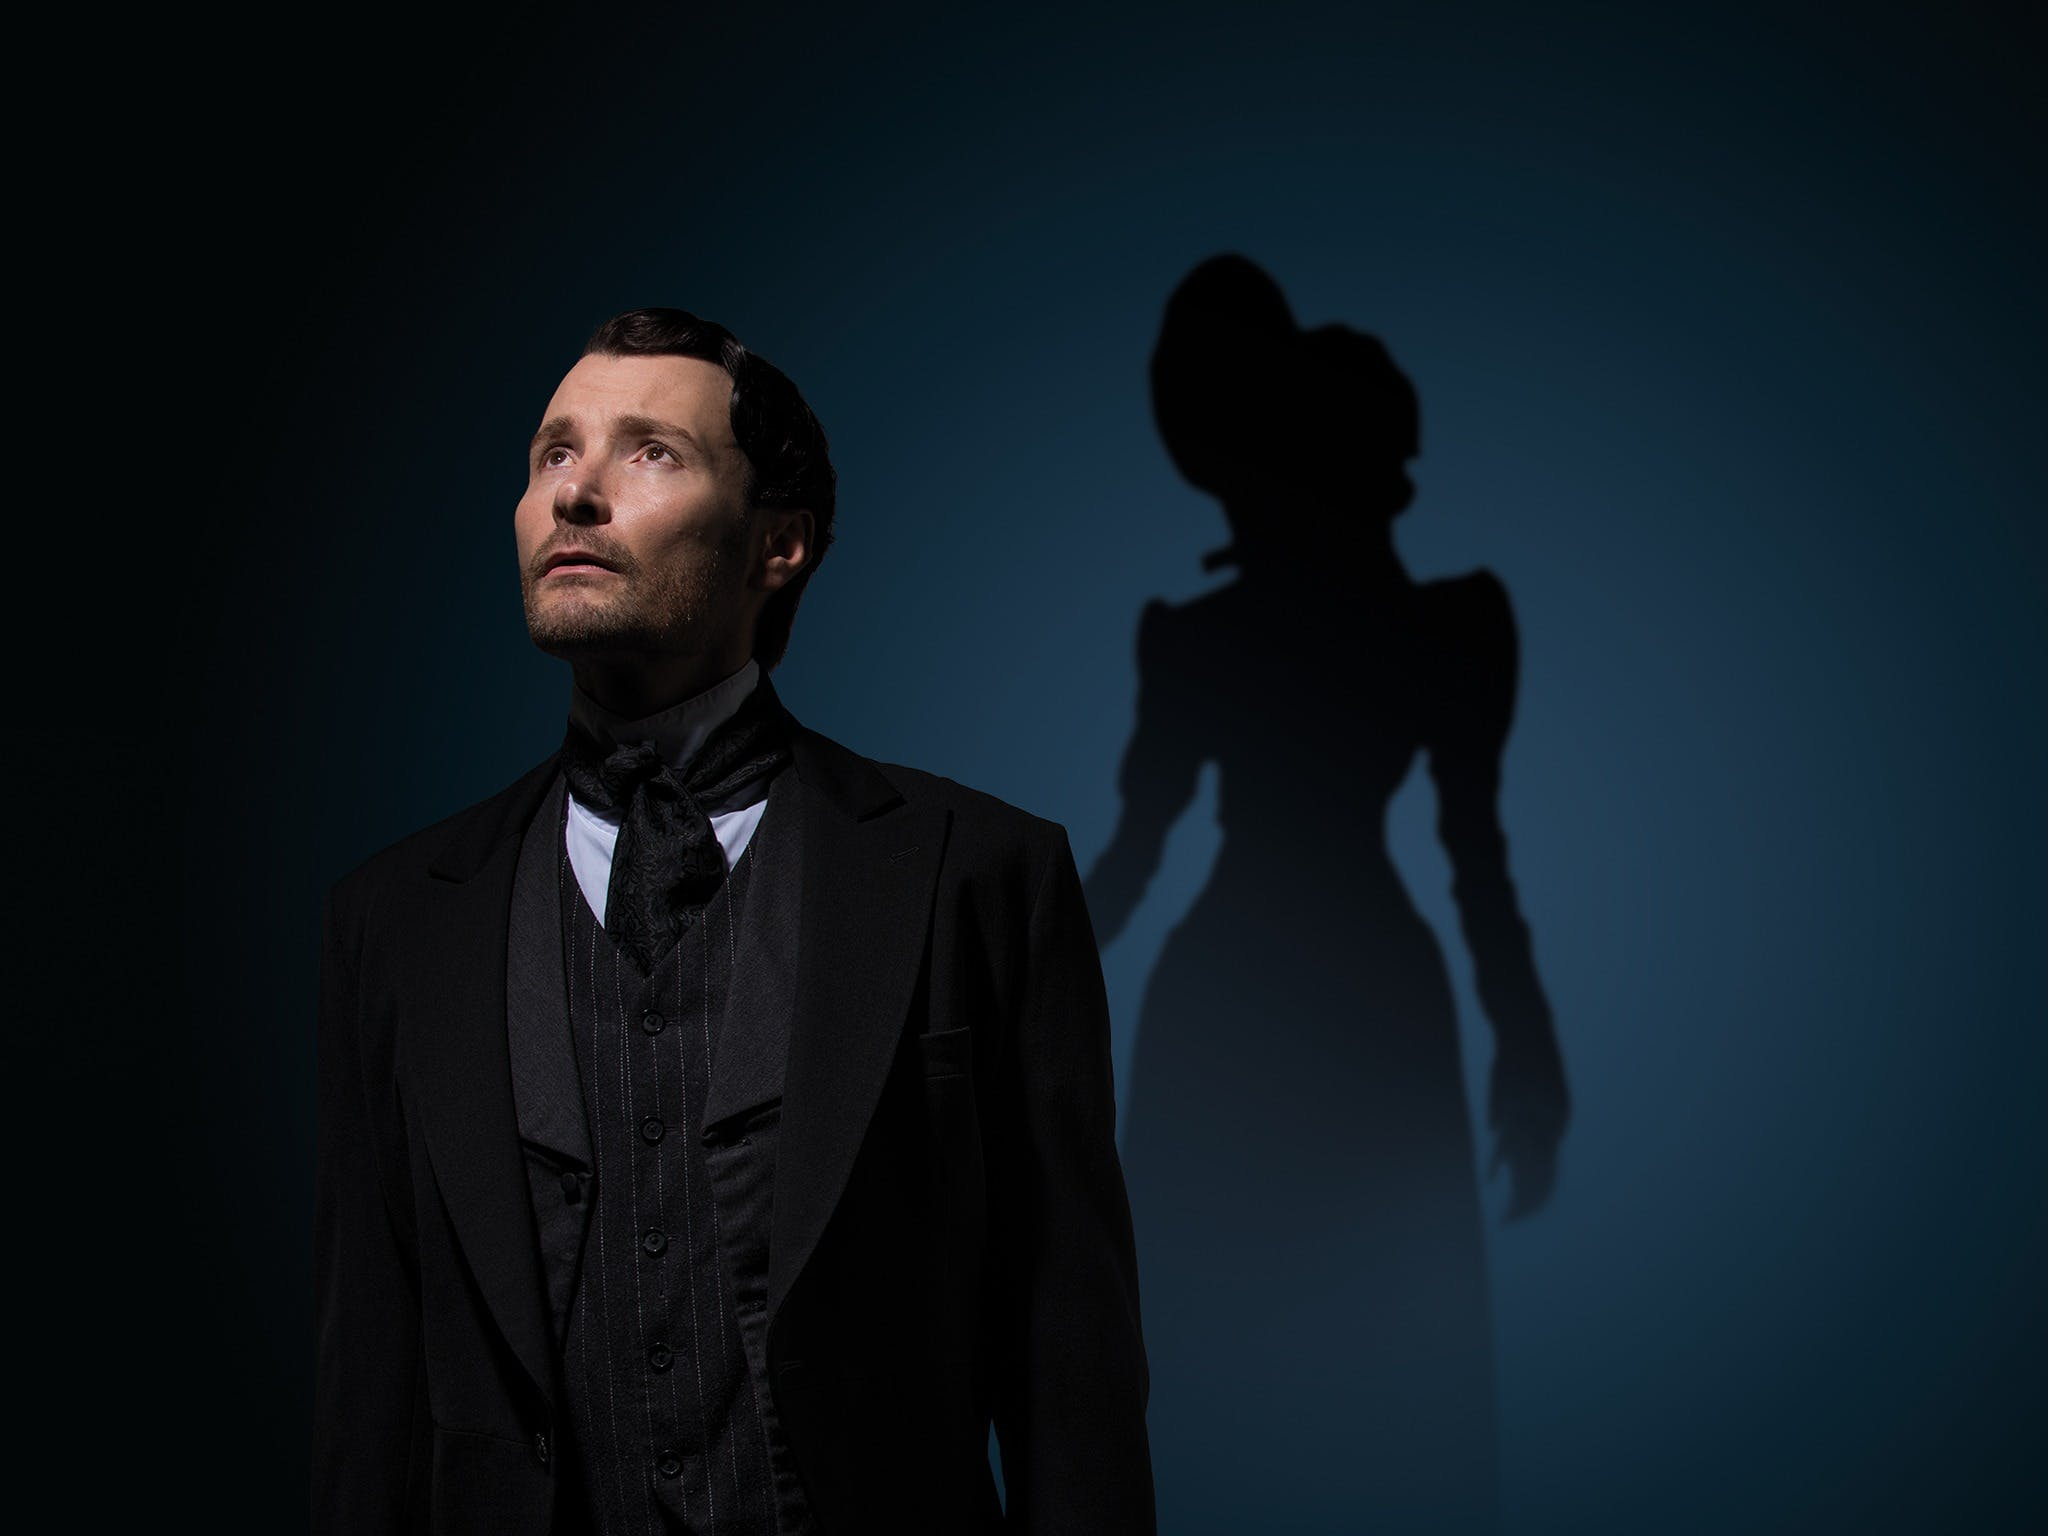 The Woman in Black by Susan Hill and Stephen Mallatrat - Accommodation Brisbane